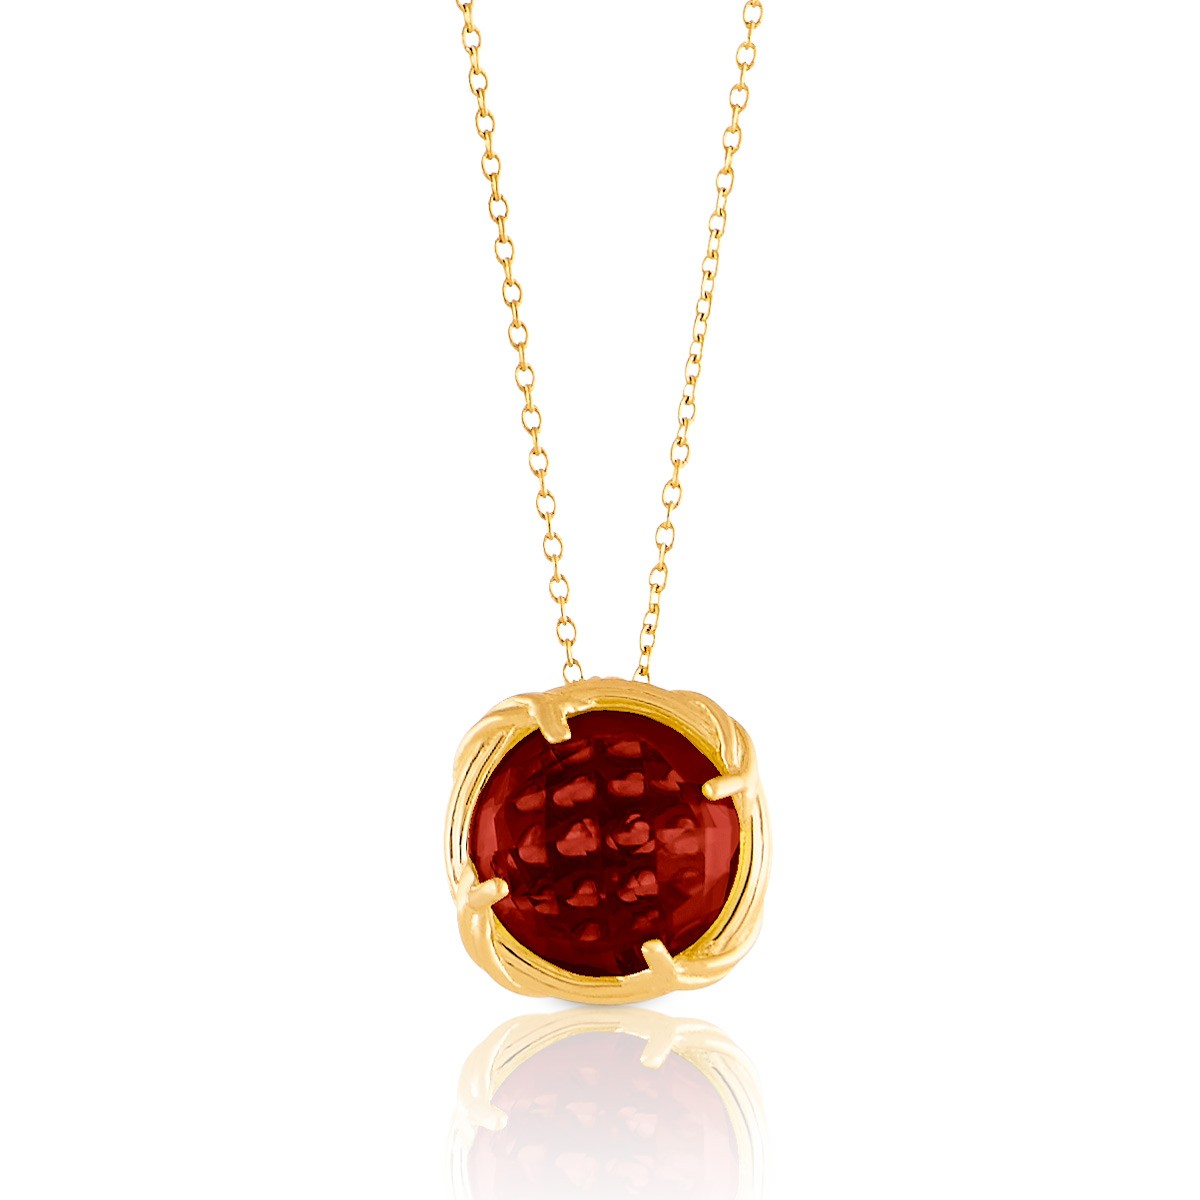 Fantasies Garnet Necklace in 18K yellow gold